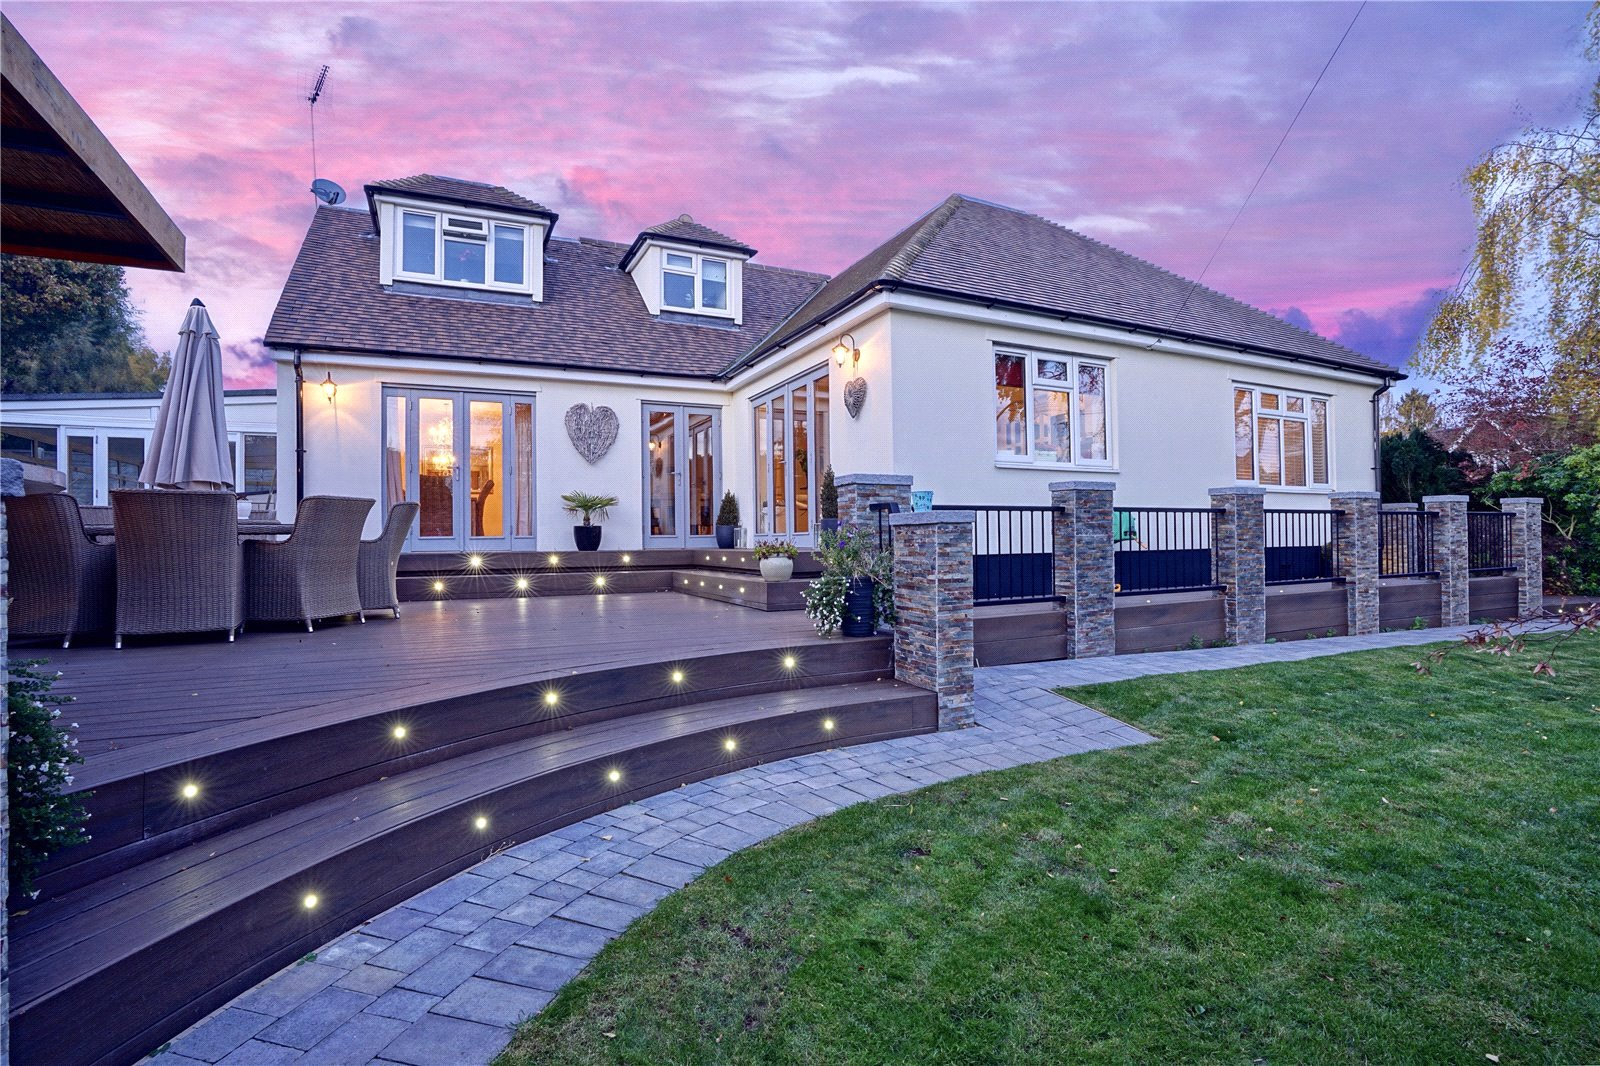 4 bed house for sale in Welwyn, AL6 0QG  - Property Image 29